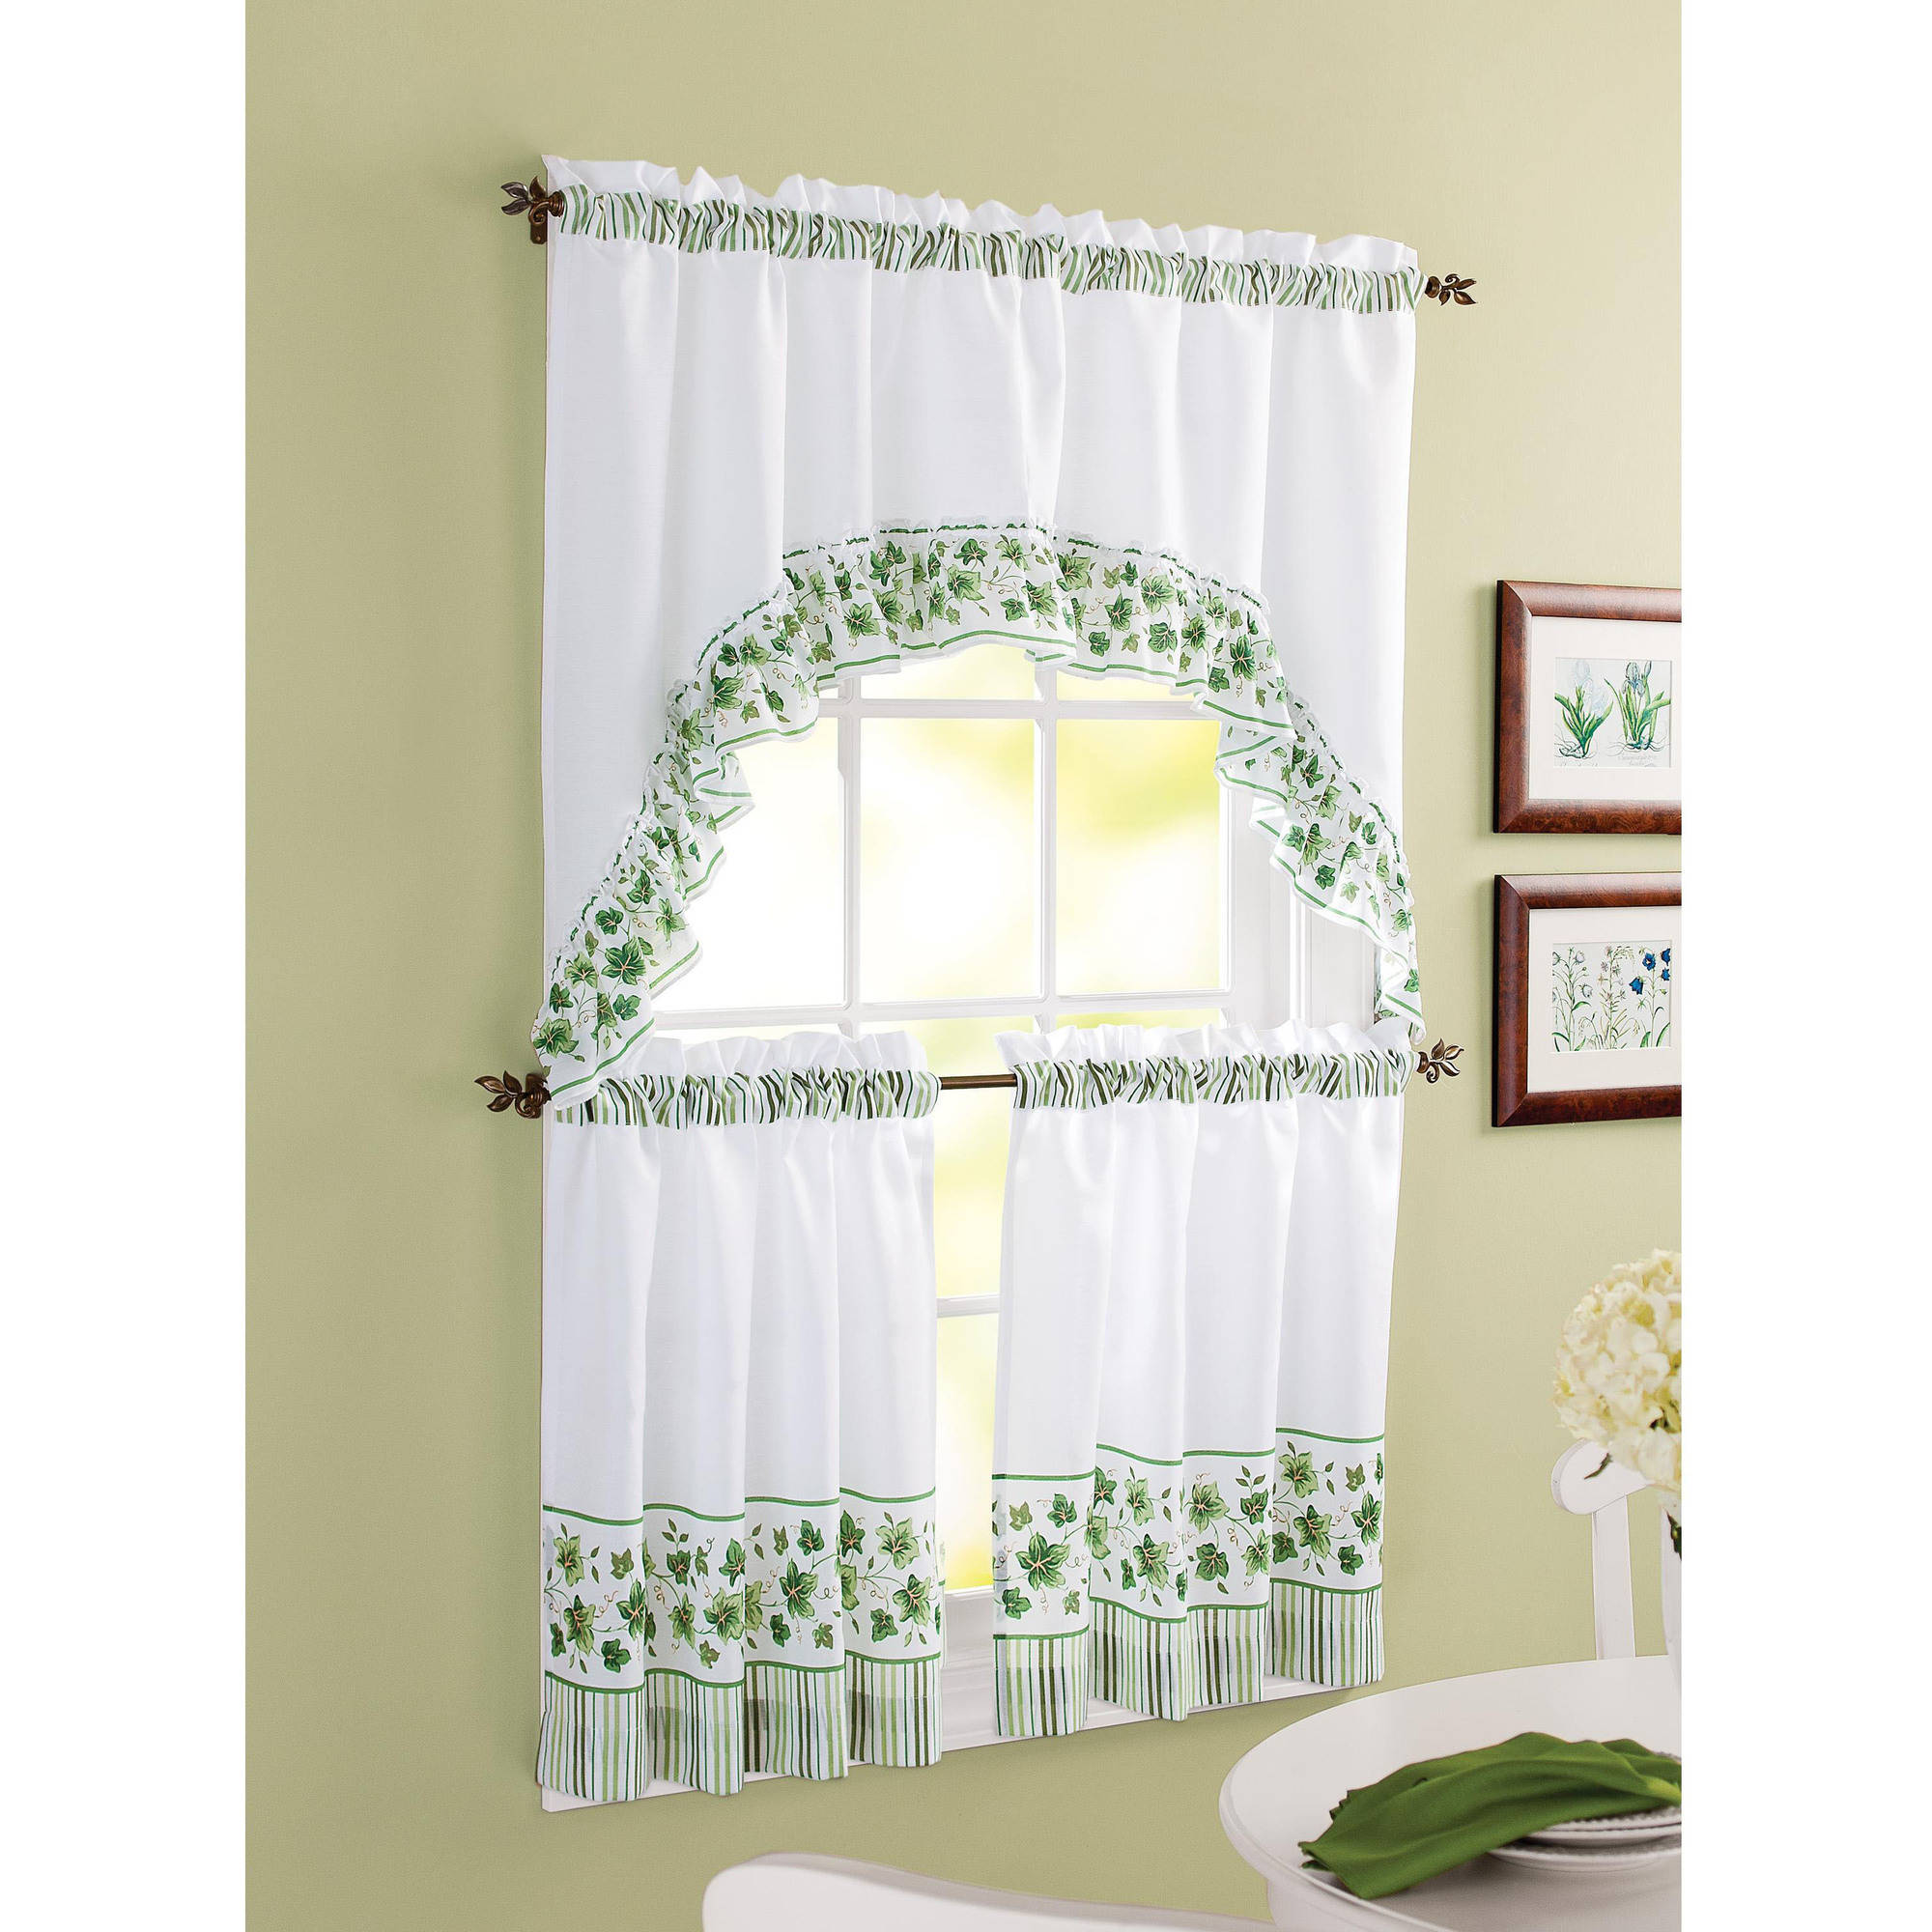 kitchen curtain mainstays seashell toss printed valance and kitchen curtains, set of 2 - CLAMQUI